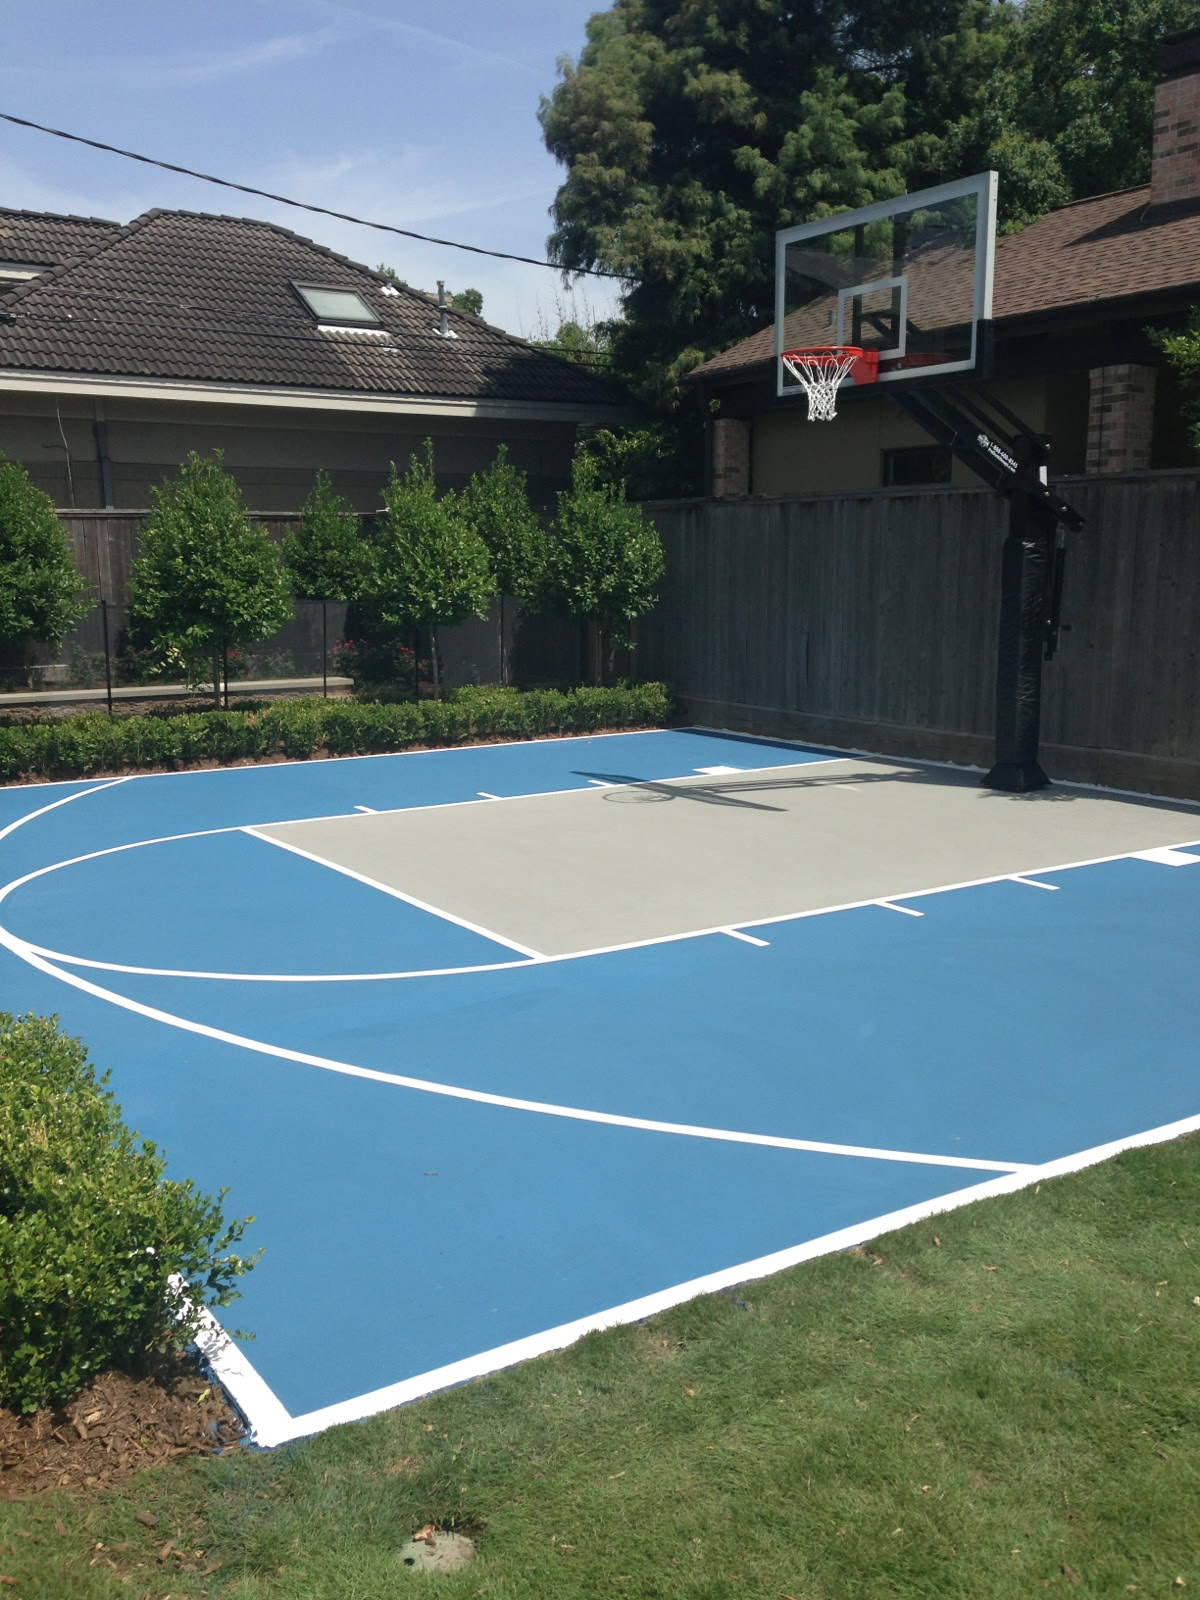 This Pro Dunk Platinum Basketball Goal Sits Over A Painted Blue And